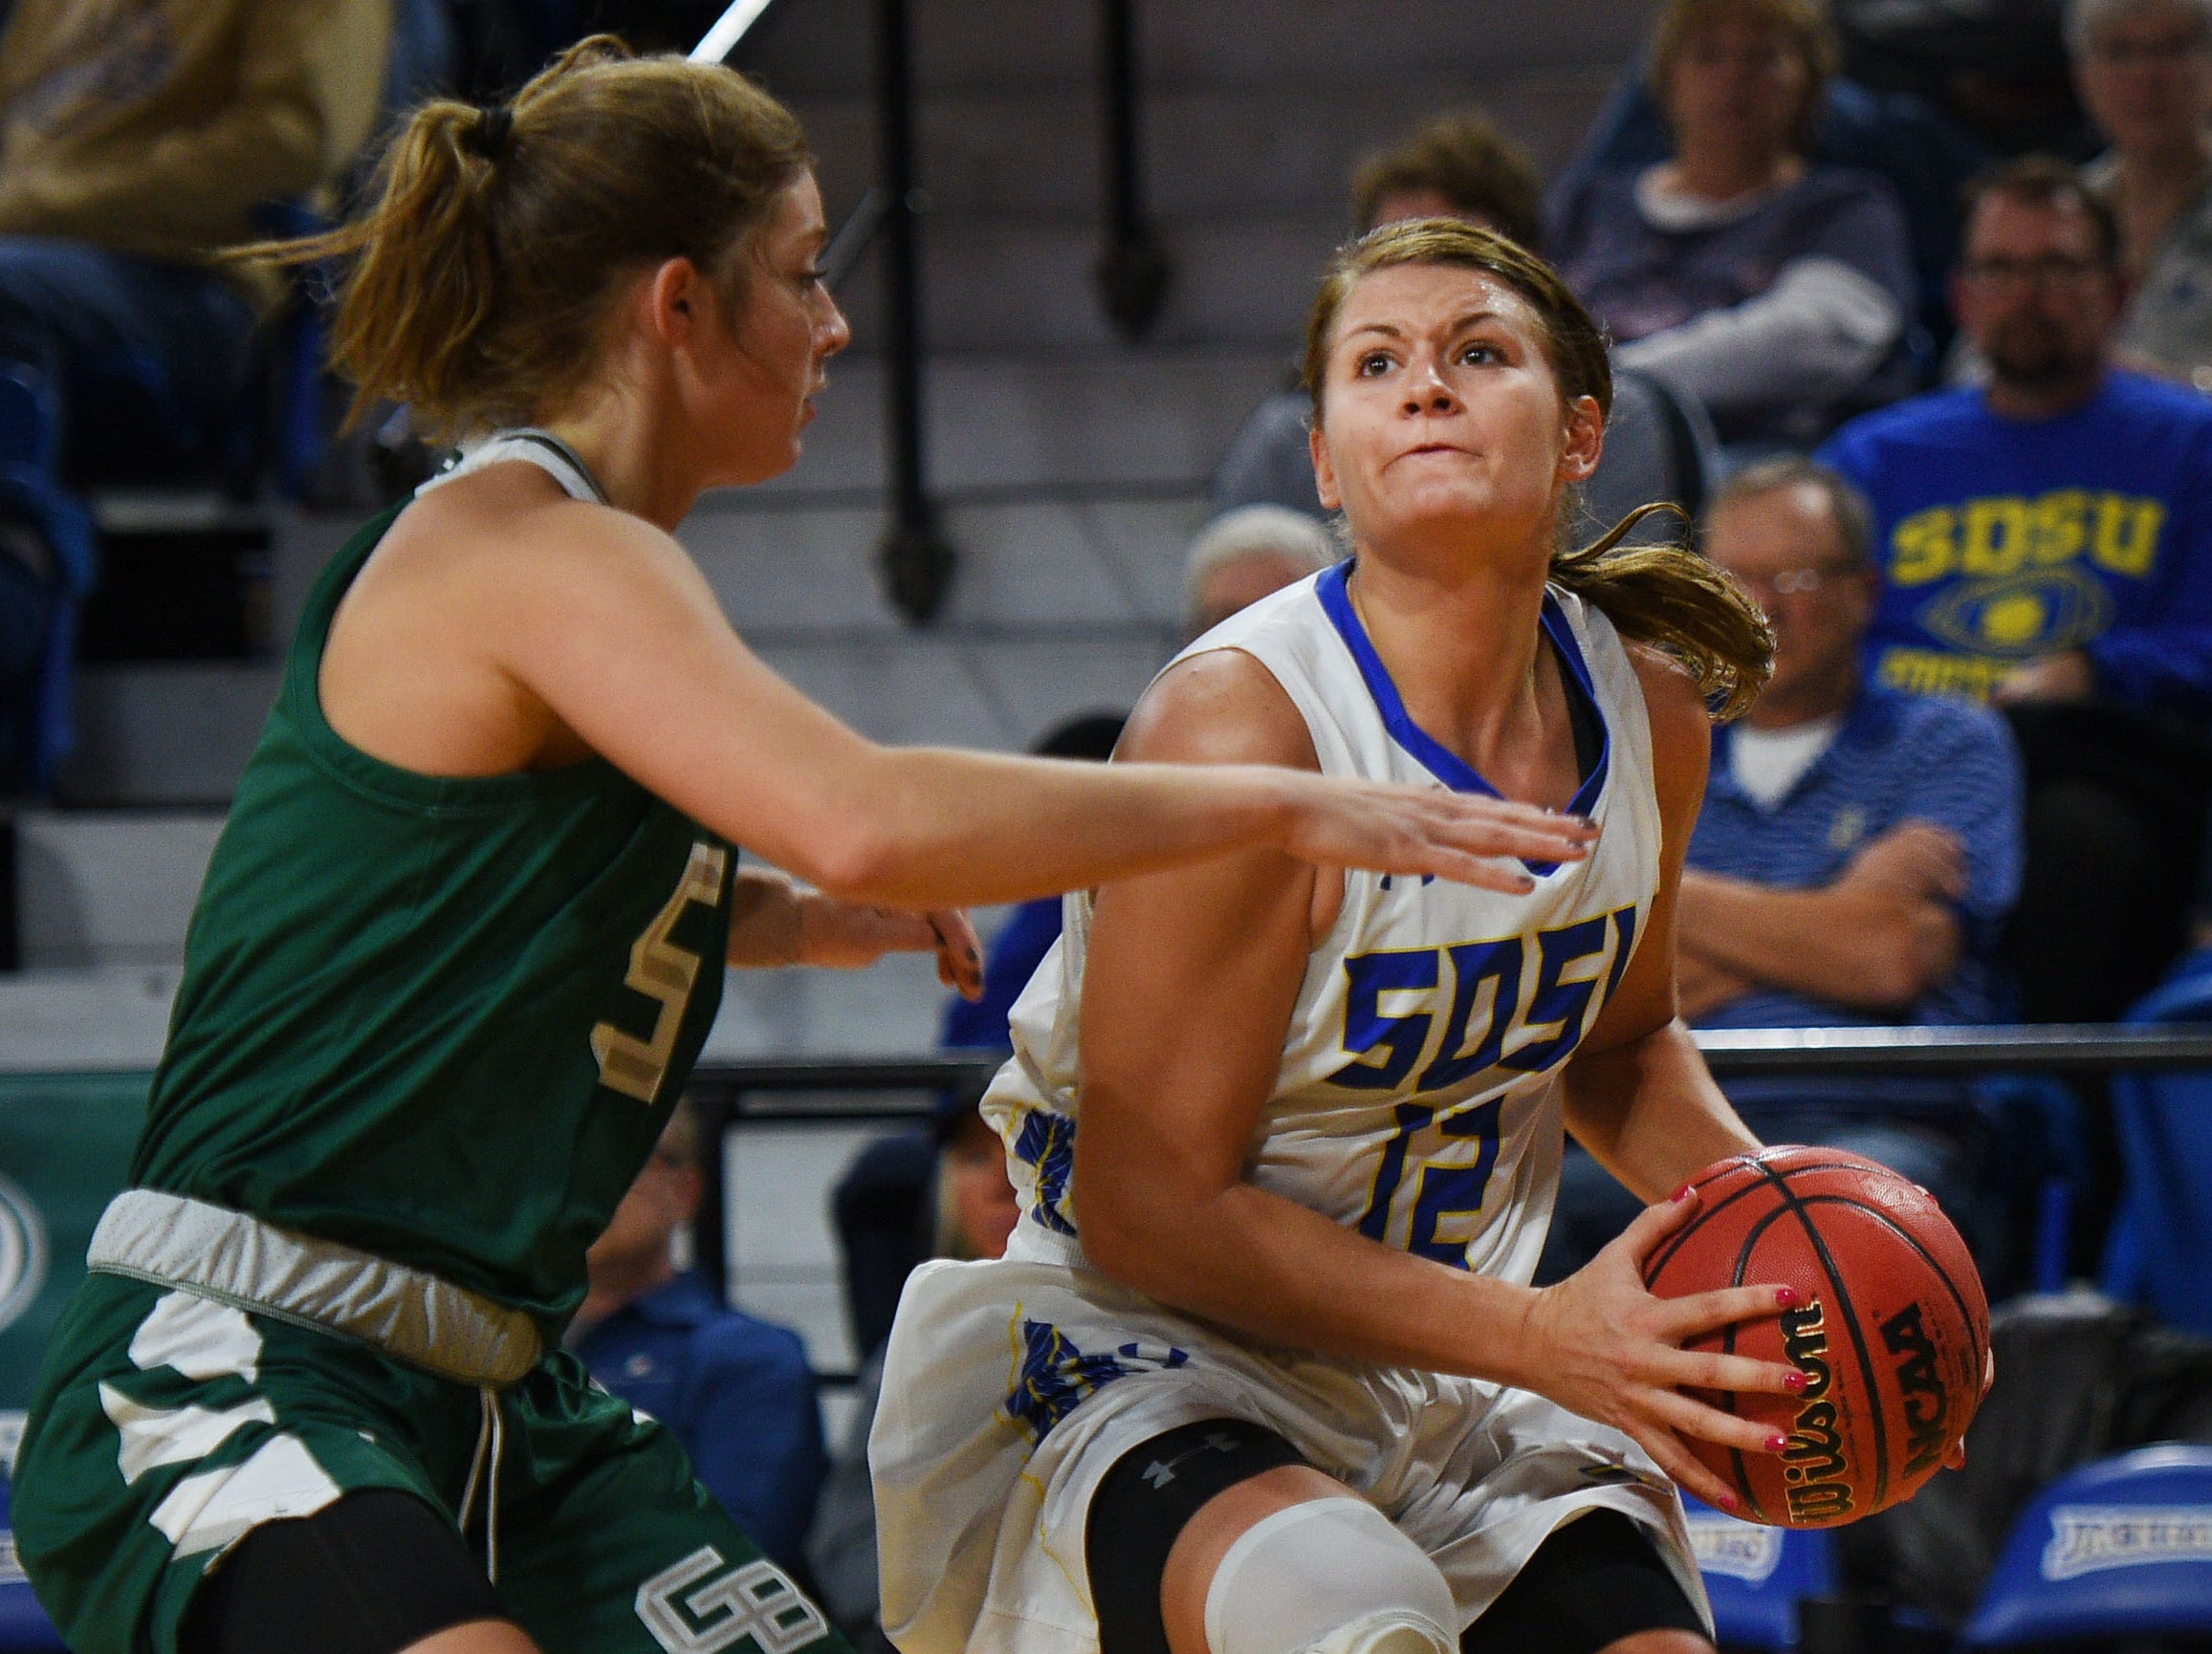 SDSU's Macy Miller goes against Green Bay defense during the game Thursday, Nov. 29, at Frost Arena in Brookings.